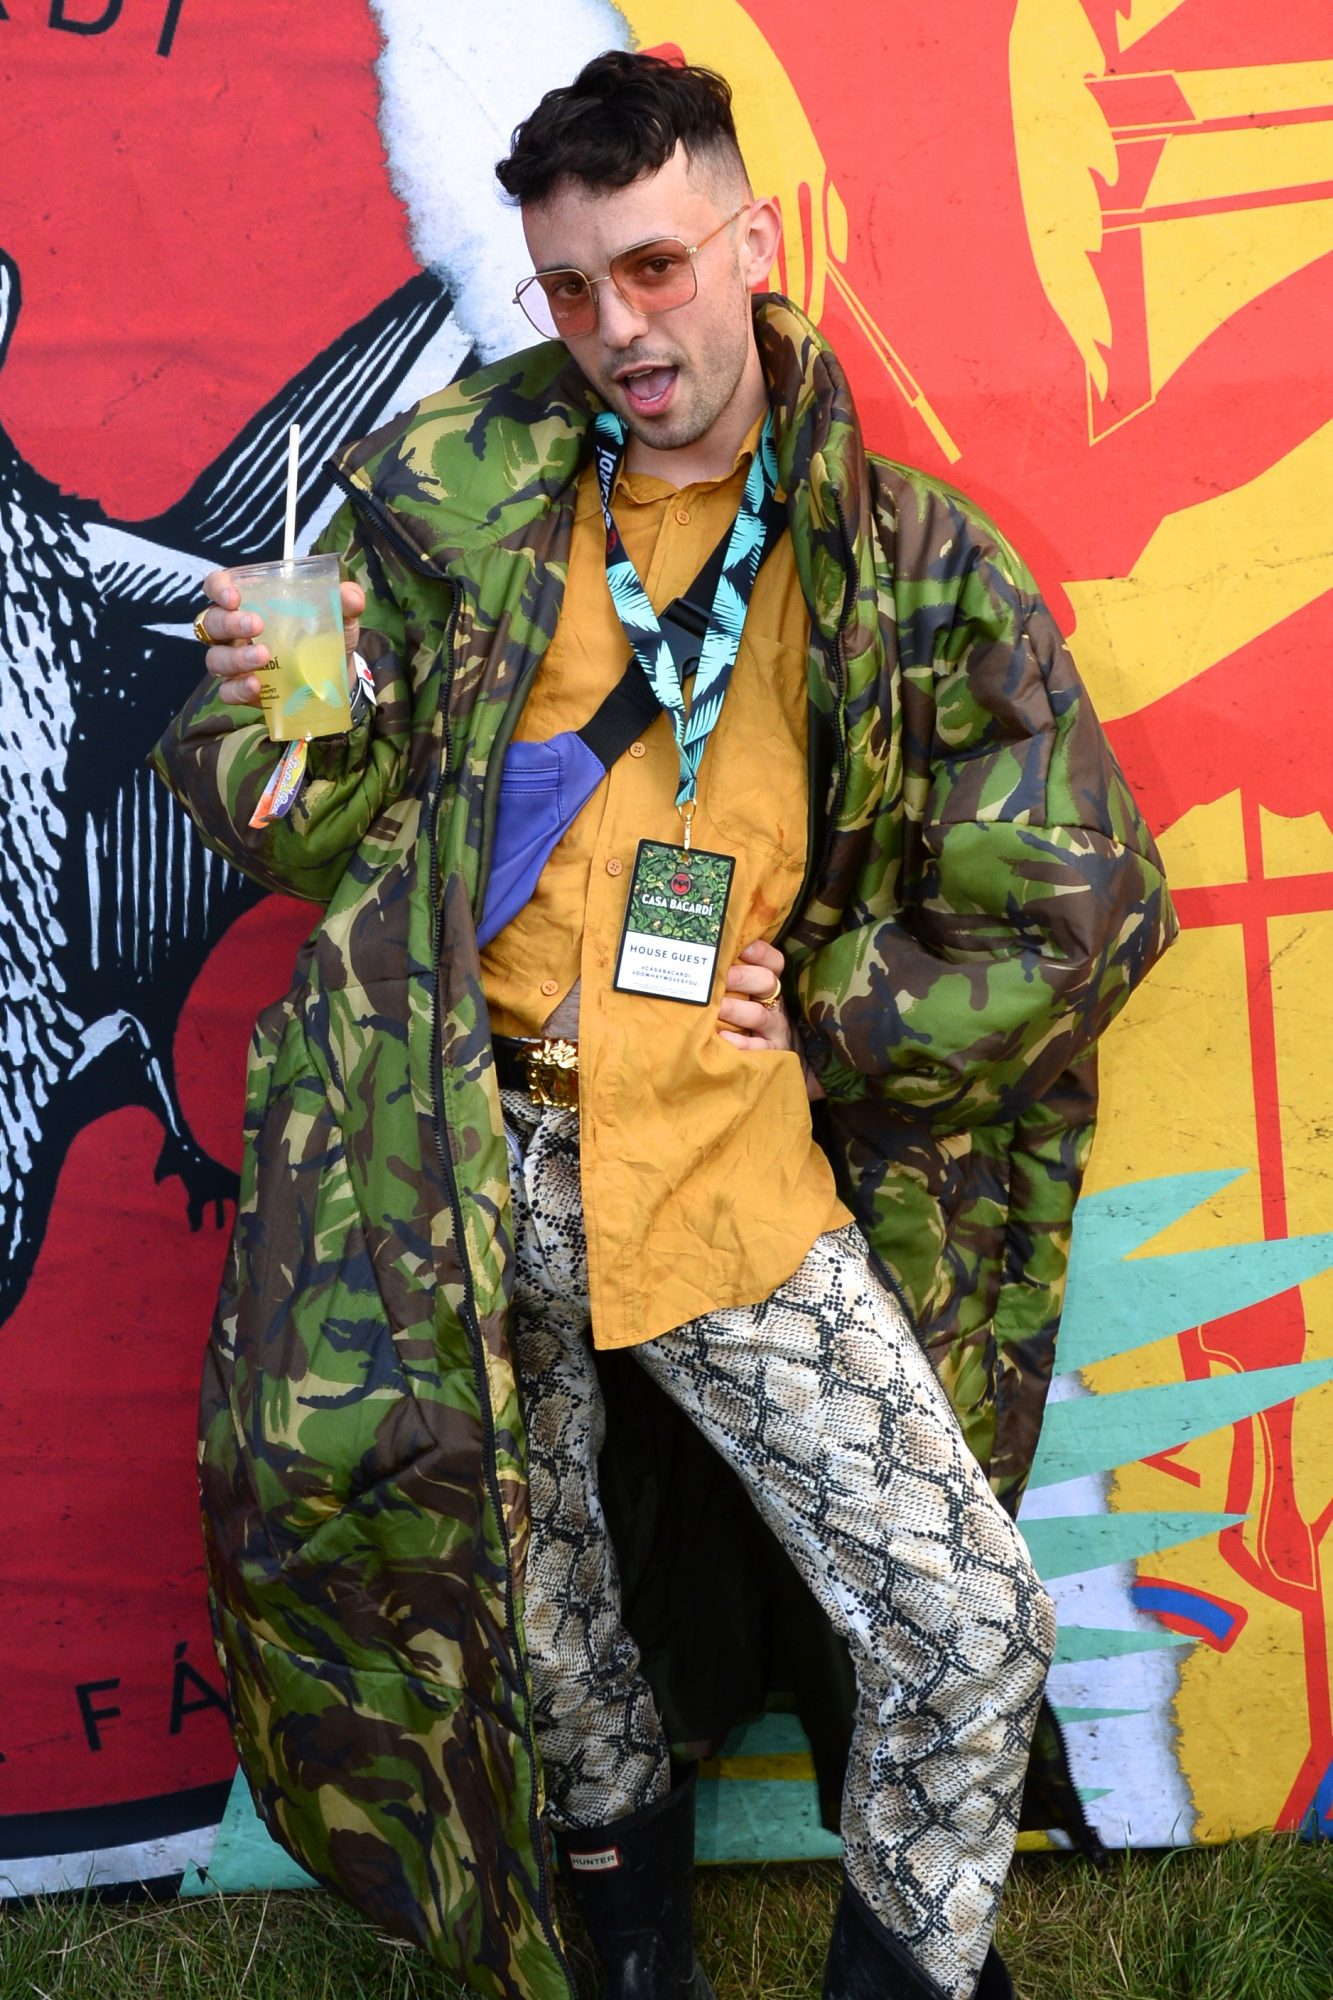 31st August 2019. James Kavanagh pictured at Casa Bacardi on day 2 of Electric Picnic. Photo: Justin Farrelly.